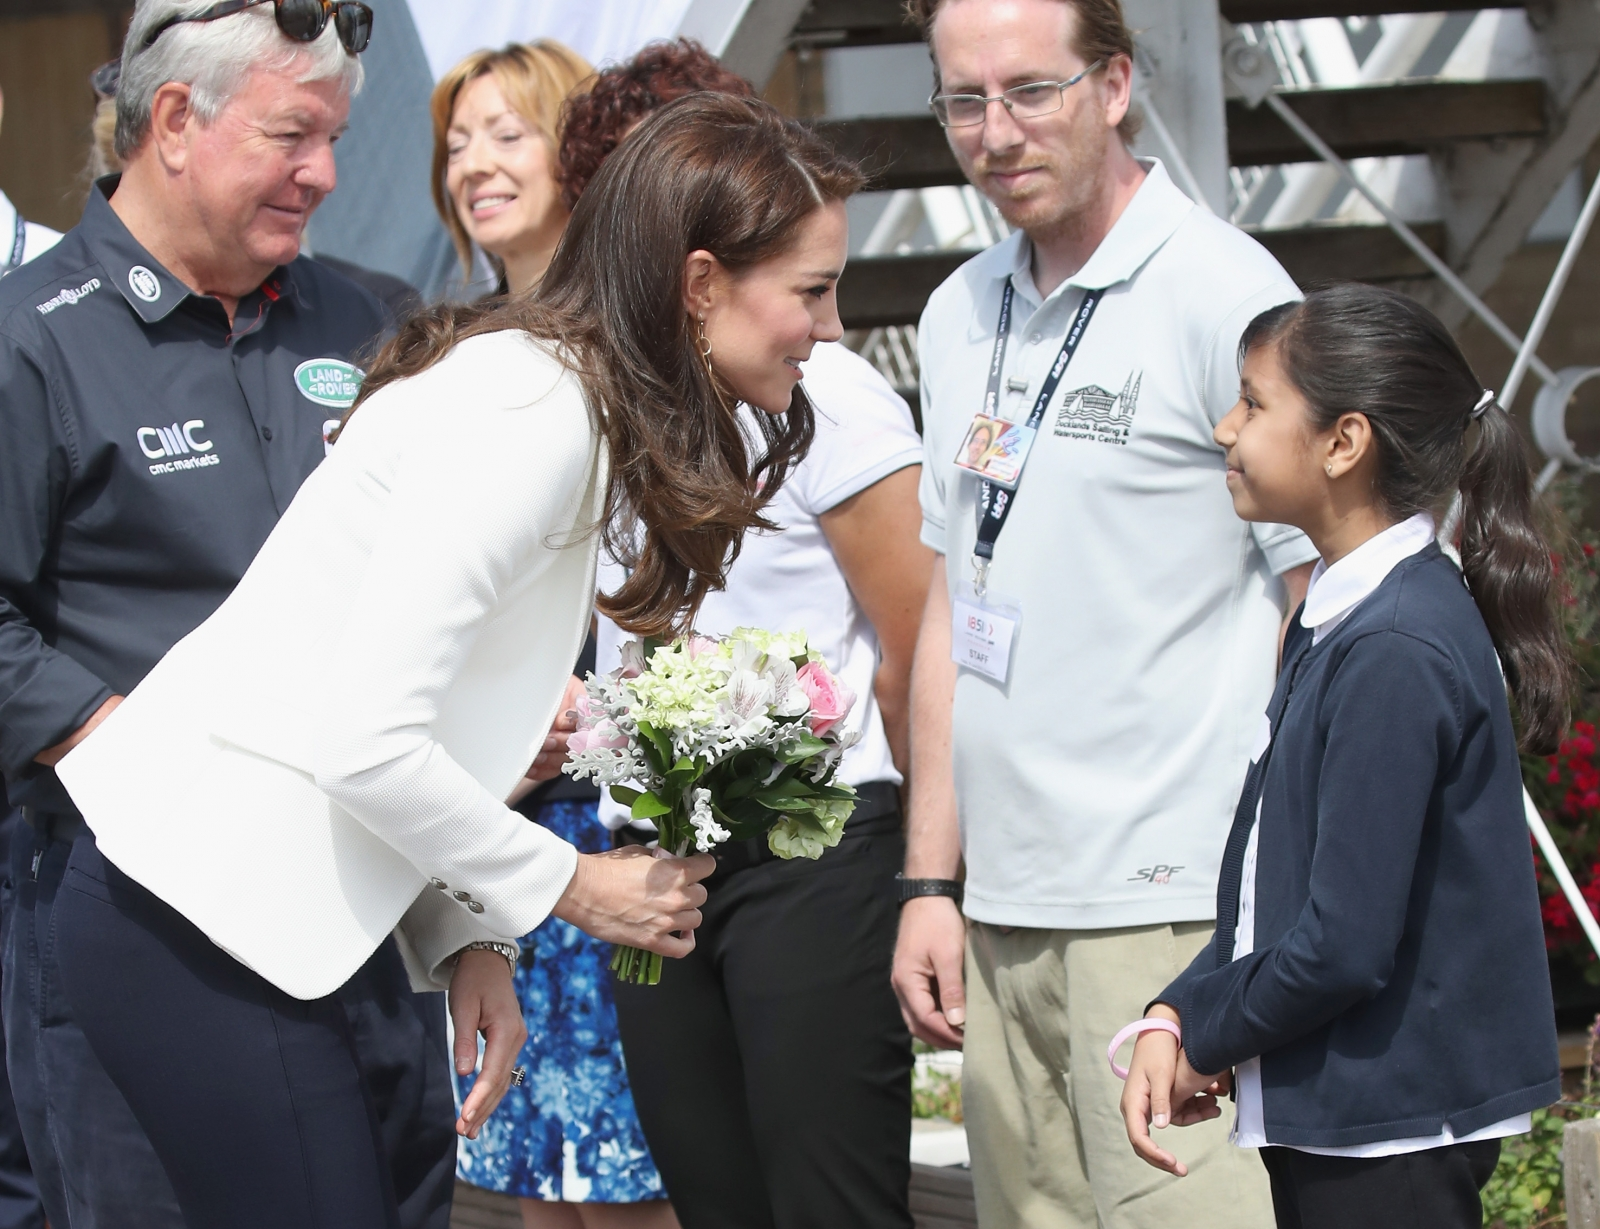 Kate joins schoolchildren at event teaching science through sailing